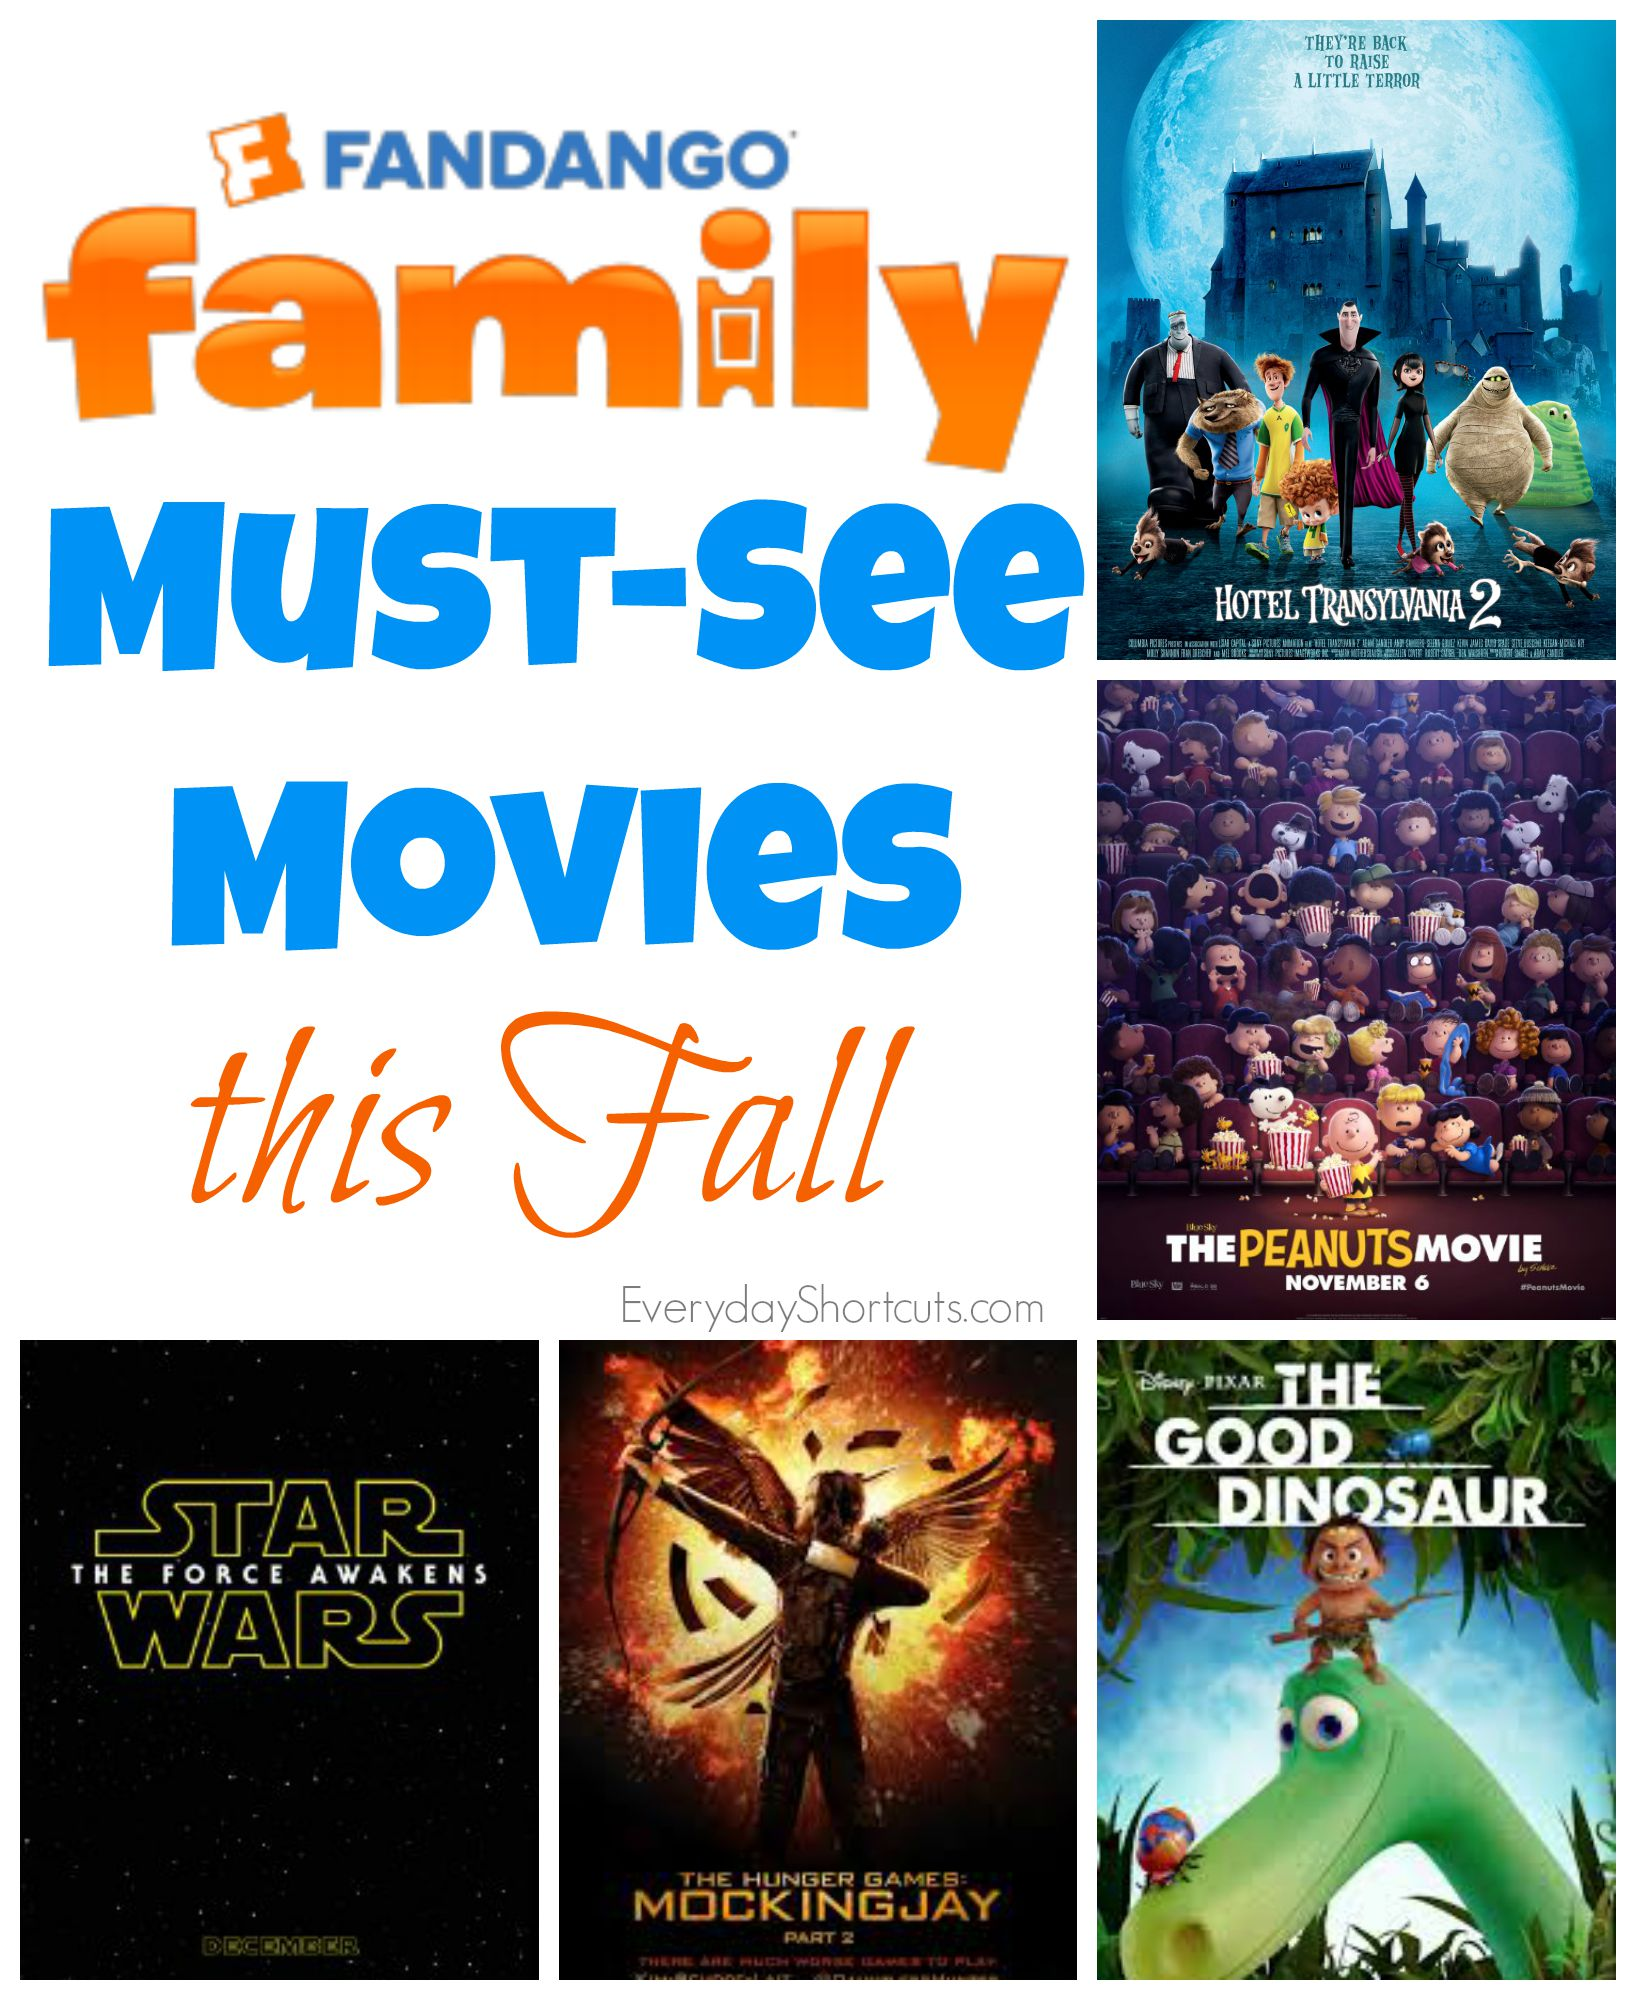 fandango must see movies this fall